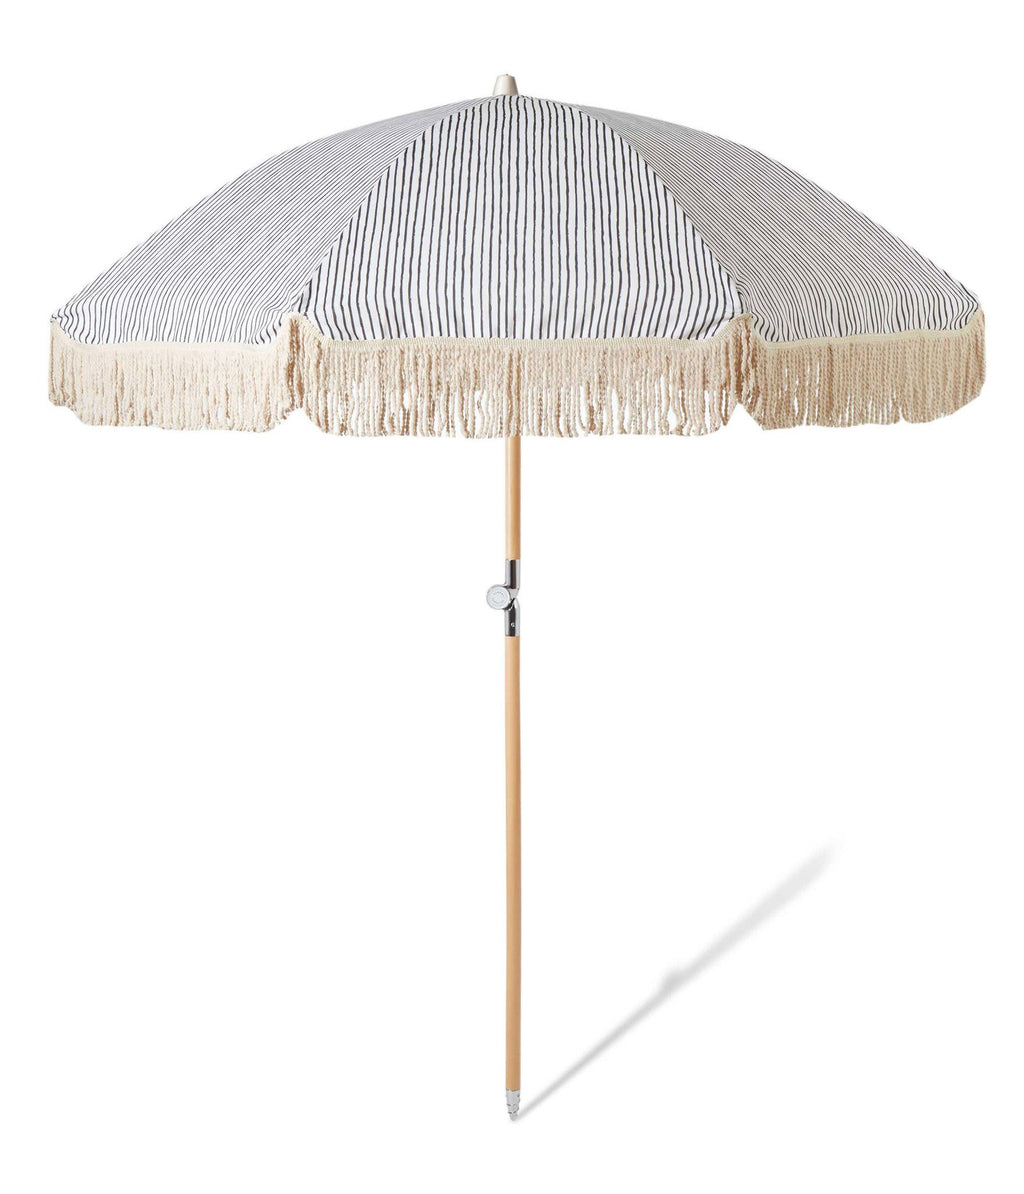 Sunday Supply Co. Natural Instincts Striped Beach Umbrella